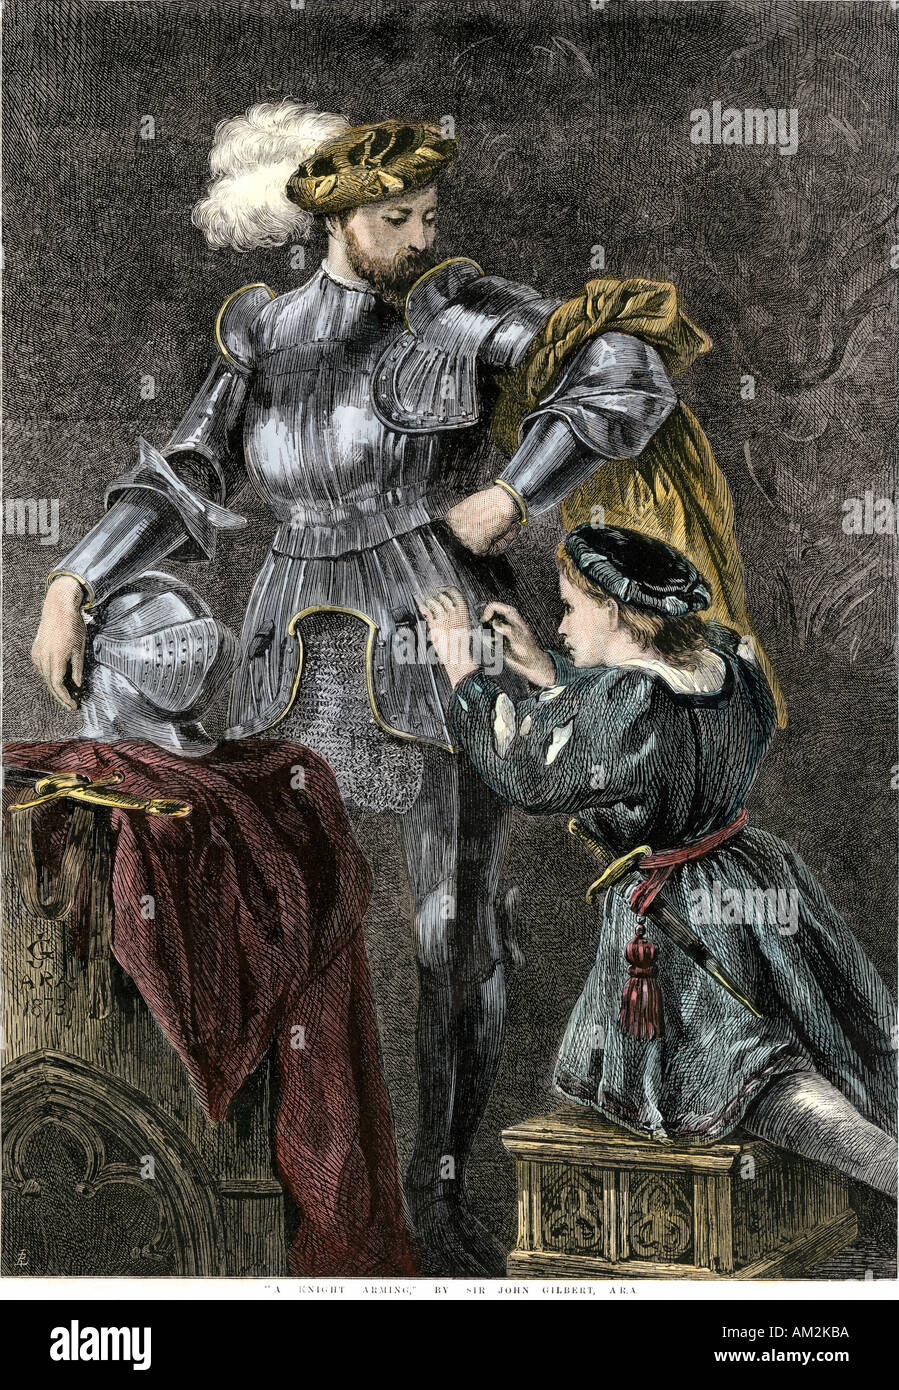 Knight being dressed in armor. Hand-colored woodcut of a John Gilbert painting - Stock Image